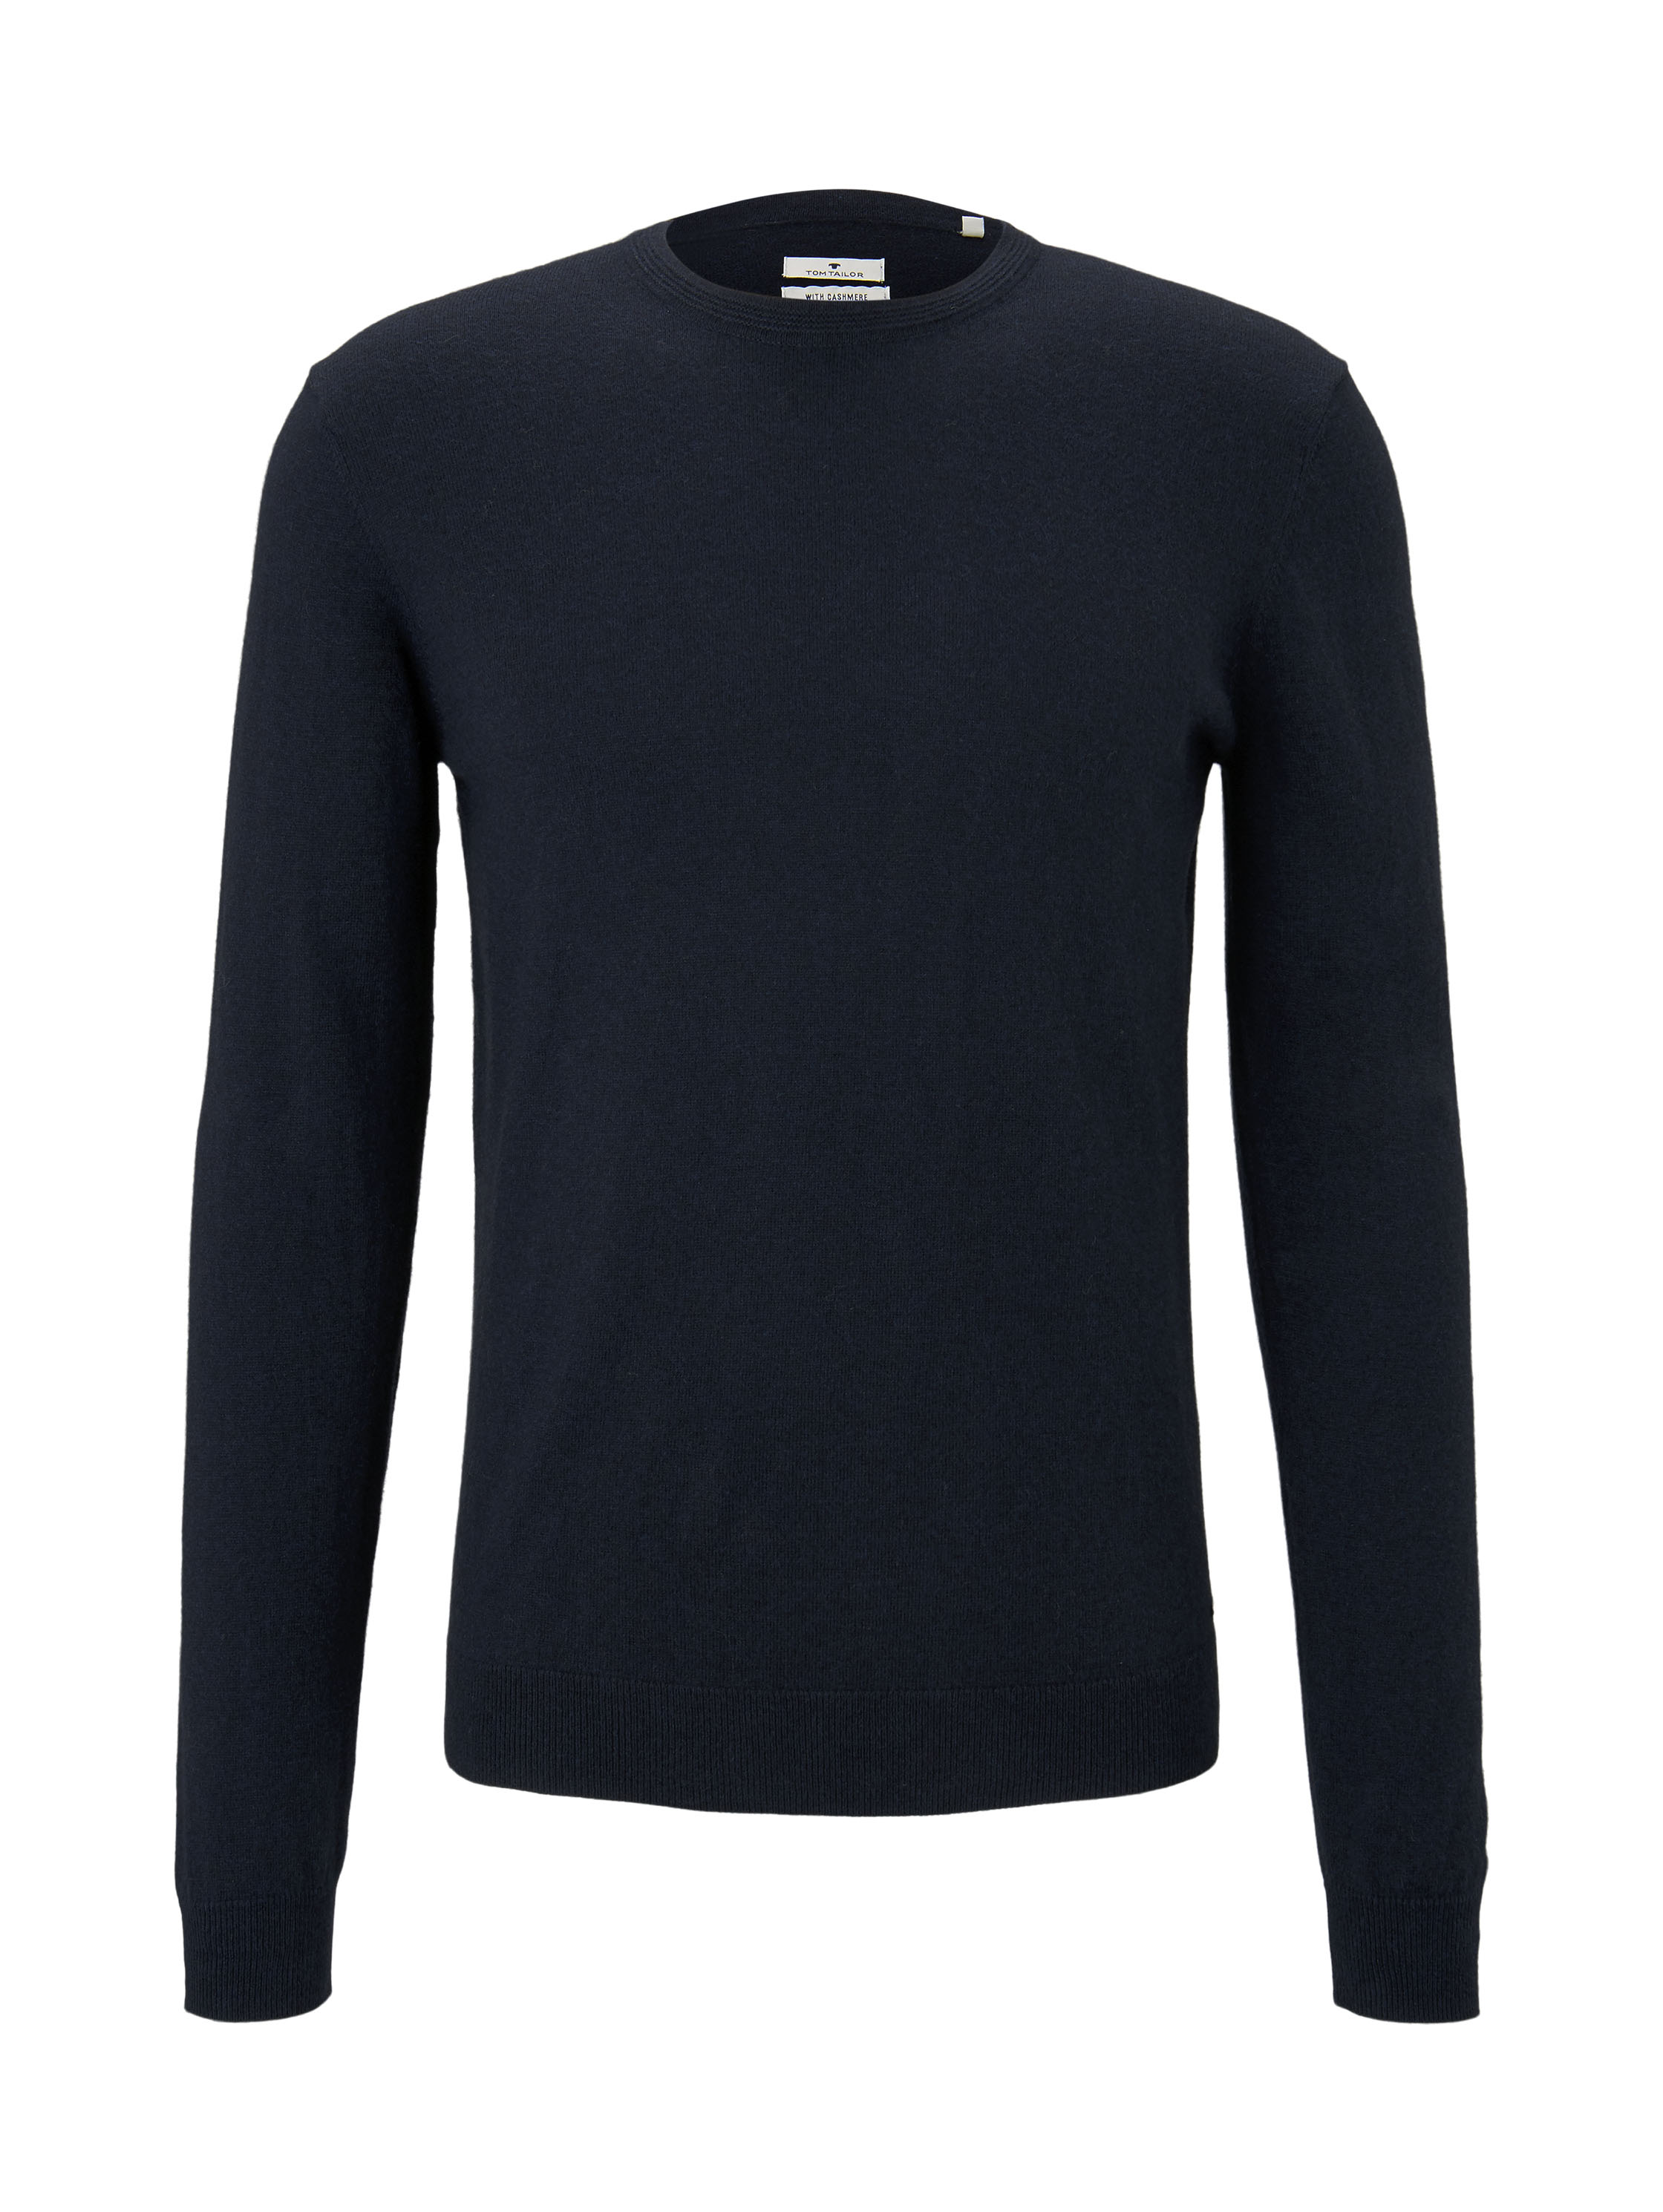 cosy cashmere blend sweater, Knitted Navy Melange          Blue